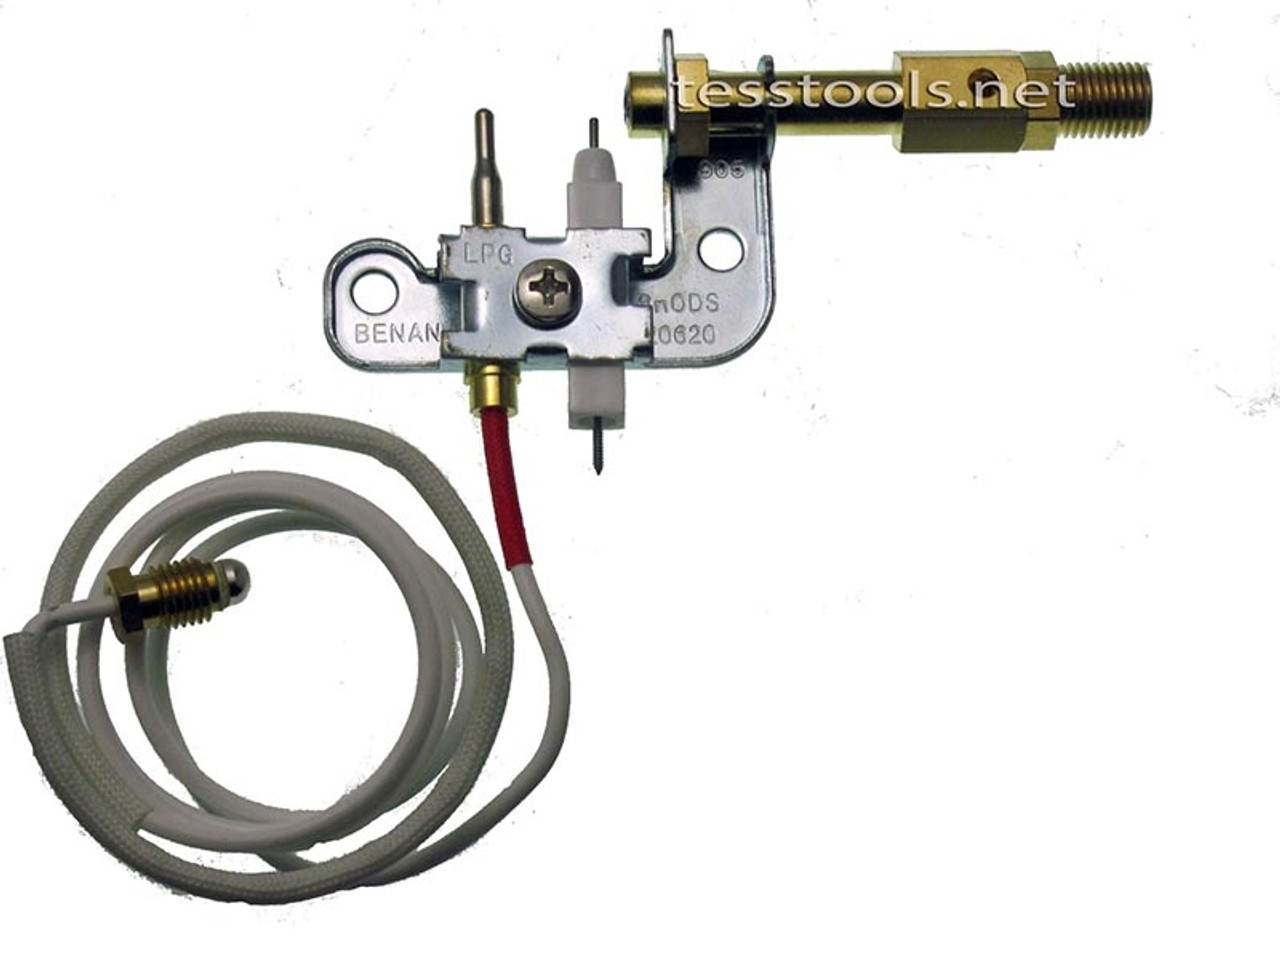 Mr Heater 80056 ODS Pilot Assembly with Thermocouple for Propane Vent Free